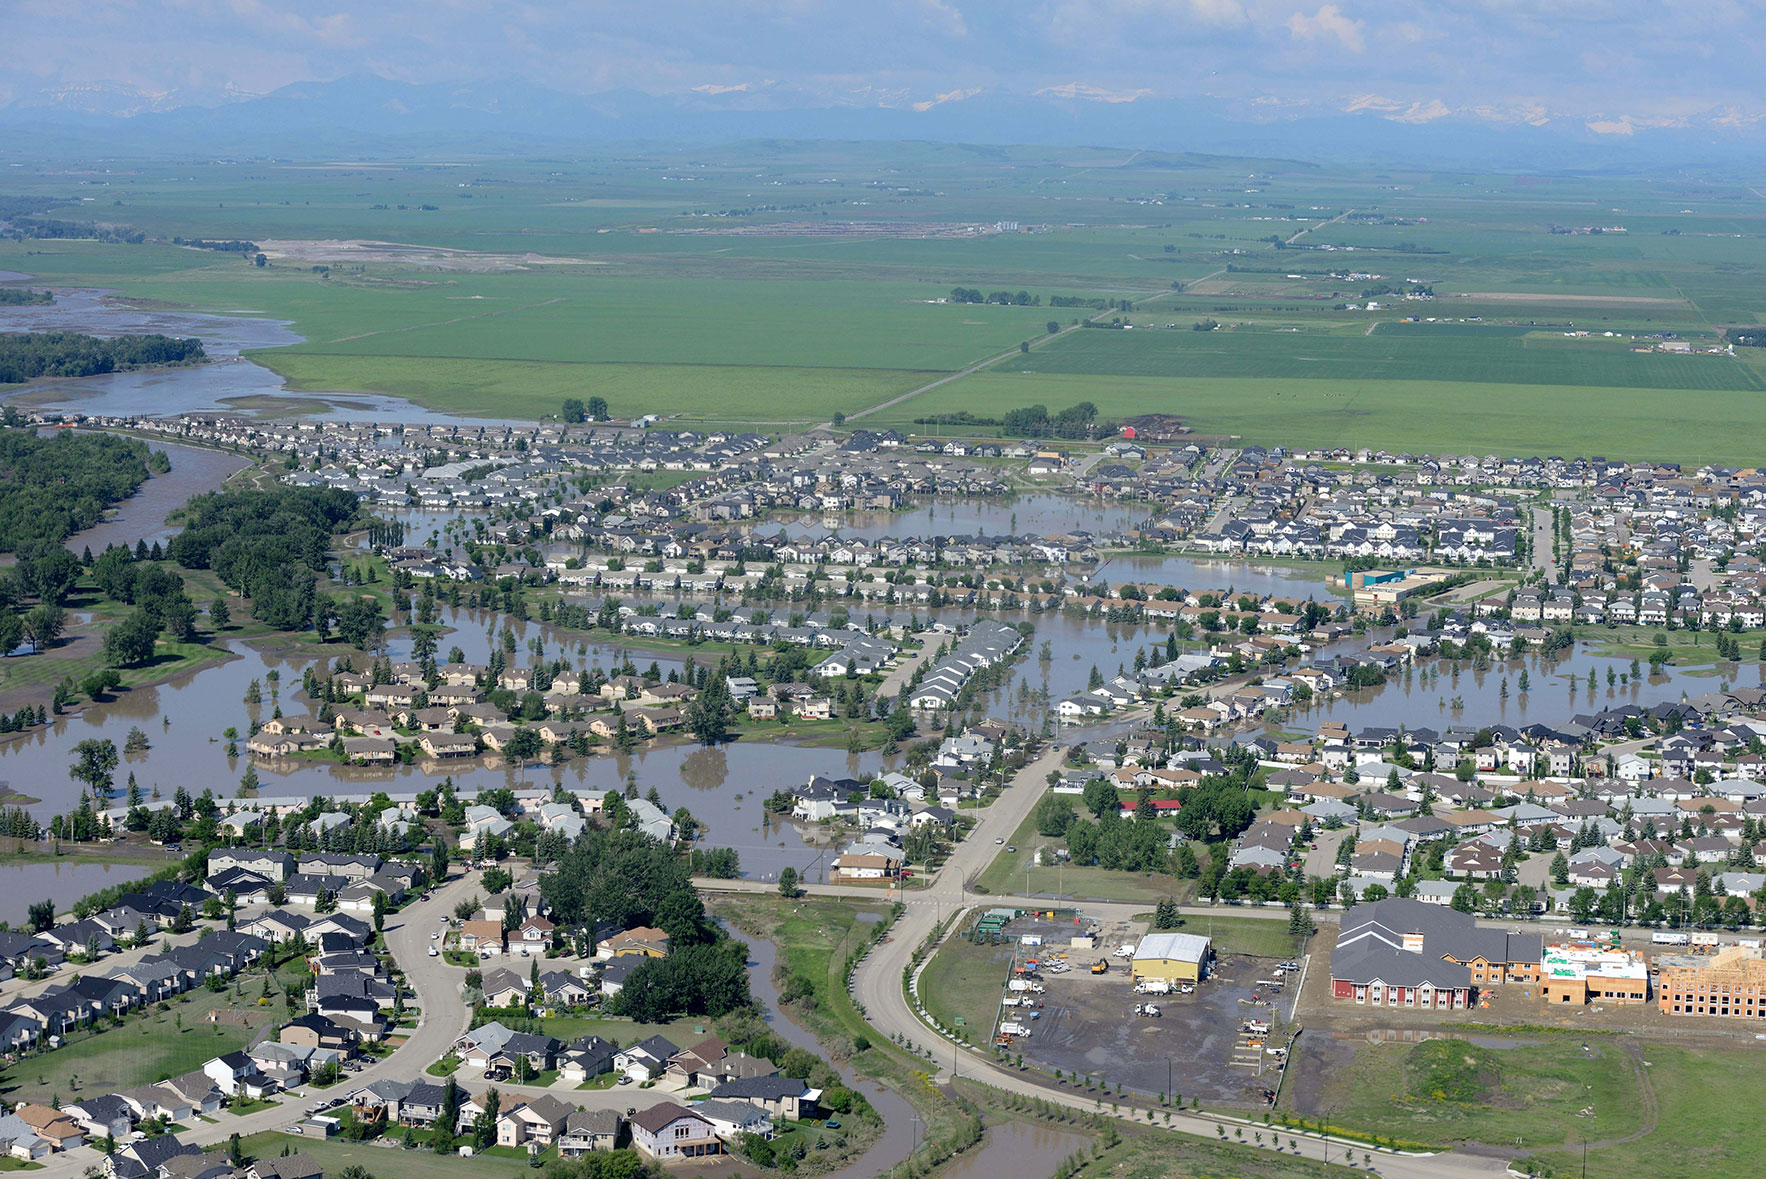 The town of High River under water